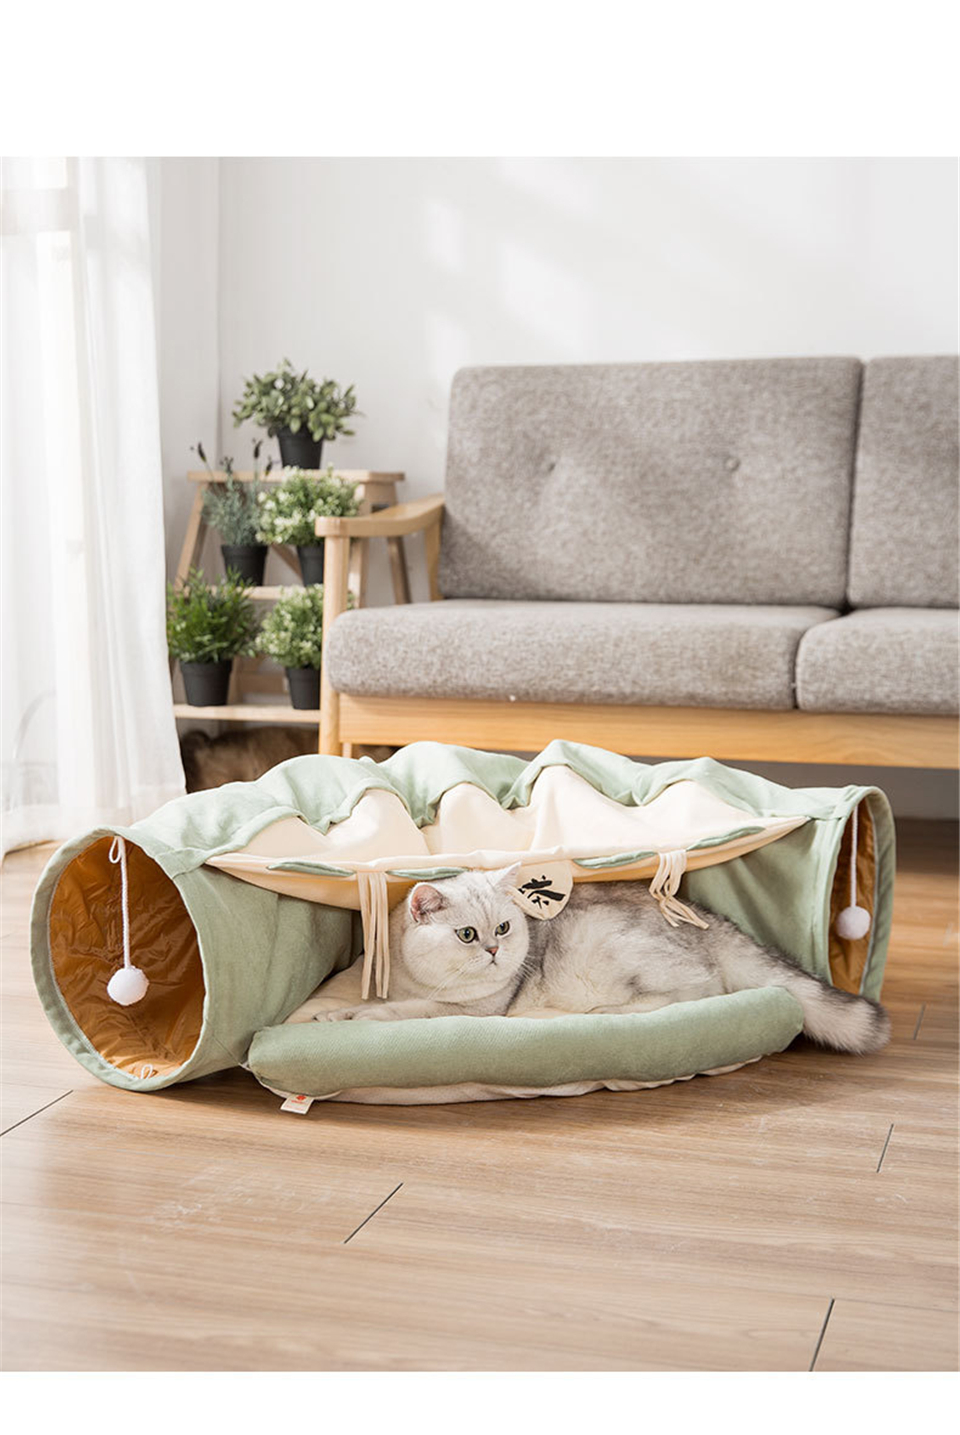 Funny Cat Tunnel bed Collapsible Crinkle Pet tent Kitten Puppy  Ferrets Rabbit interactive Toys 2 holes Tunnel  Pet cat nest 8